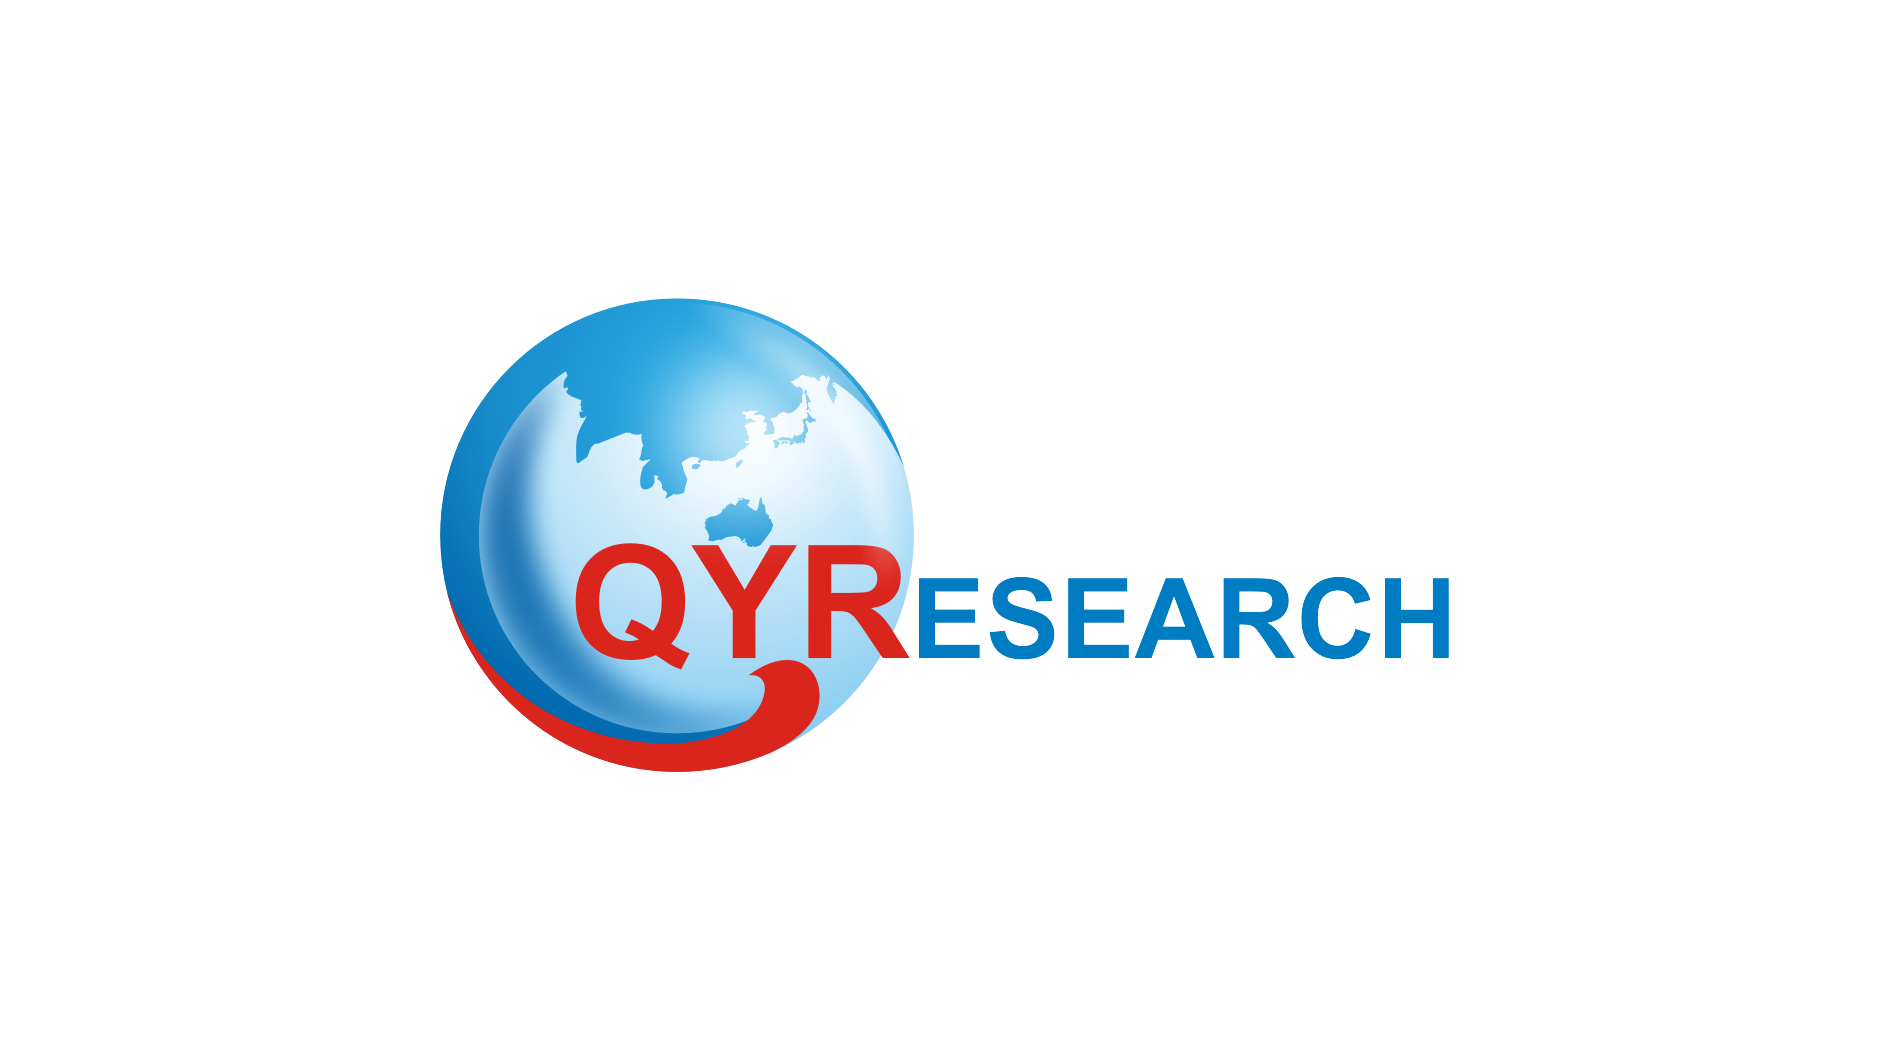 2012-2022 Report on Global Transportation as a service (TaaS) Market Competition, Status and Forecas